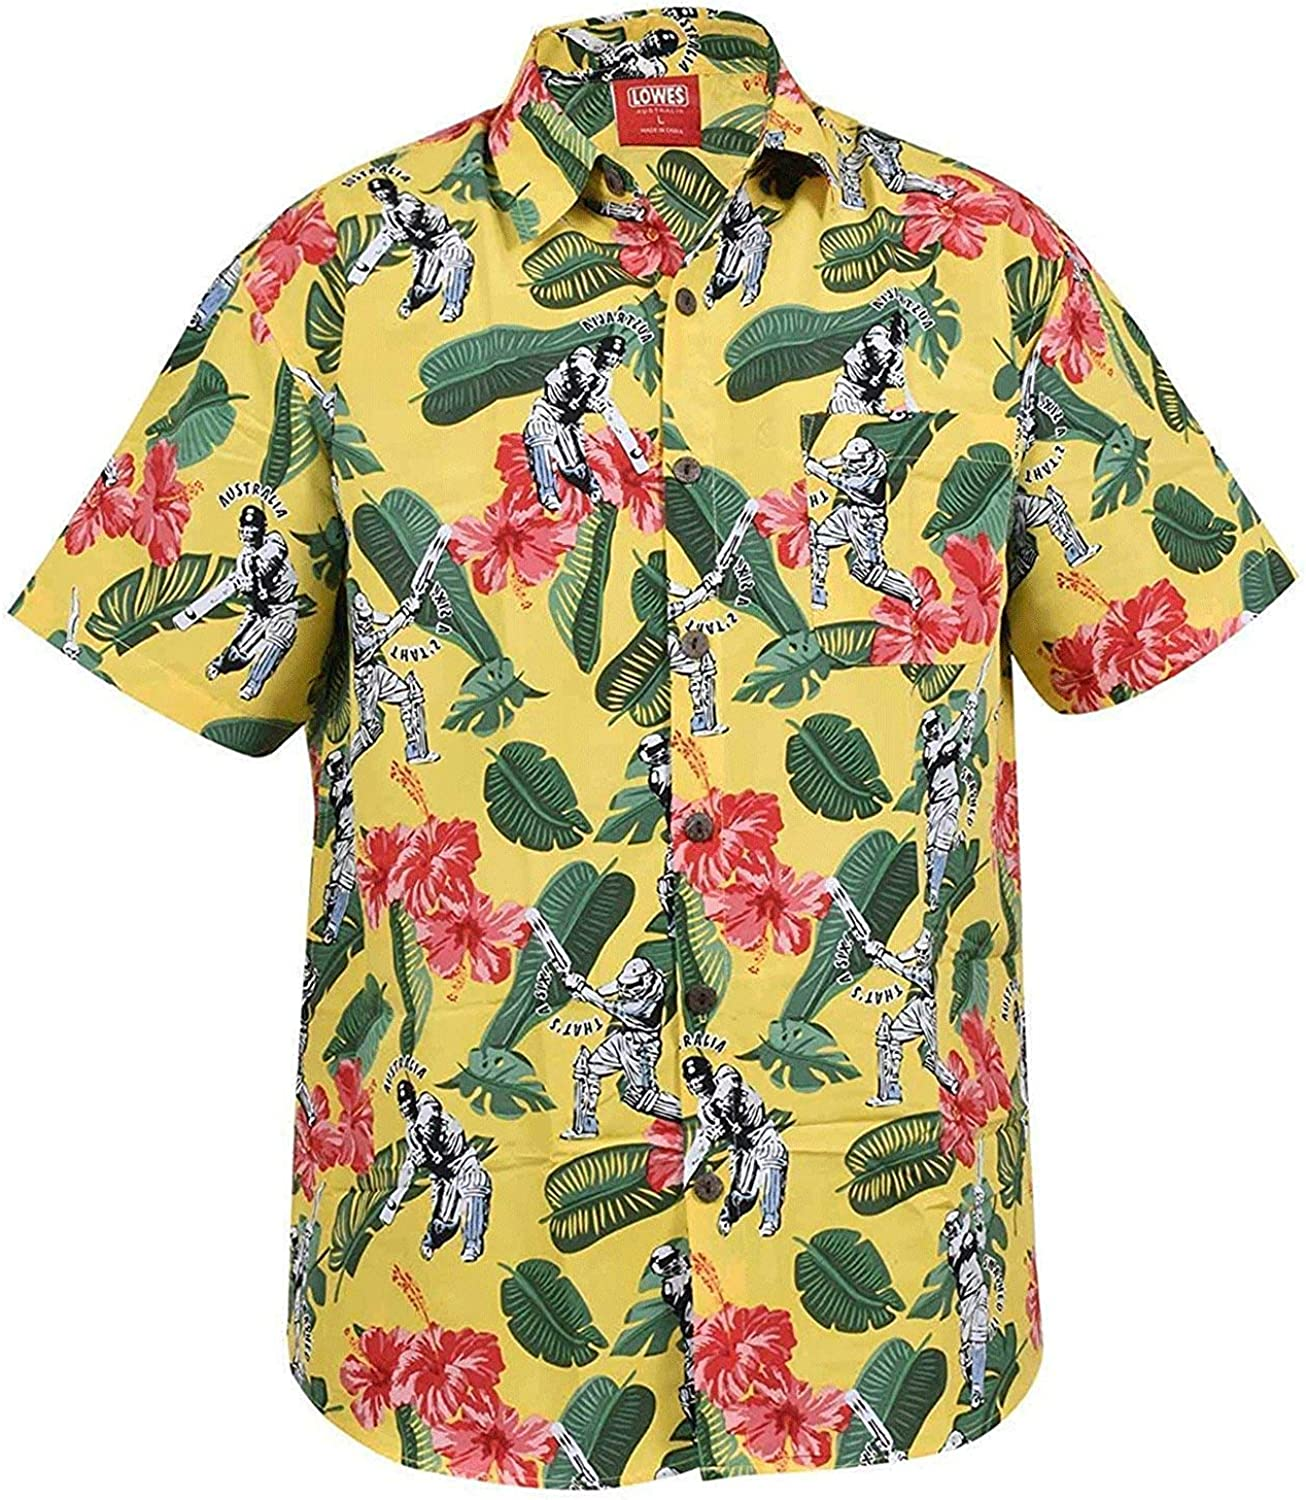 Mens Short Sleeve Hawaiian Floral Tee Party Holiday Beach Shirt Aloha Fancy Tops